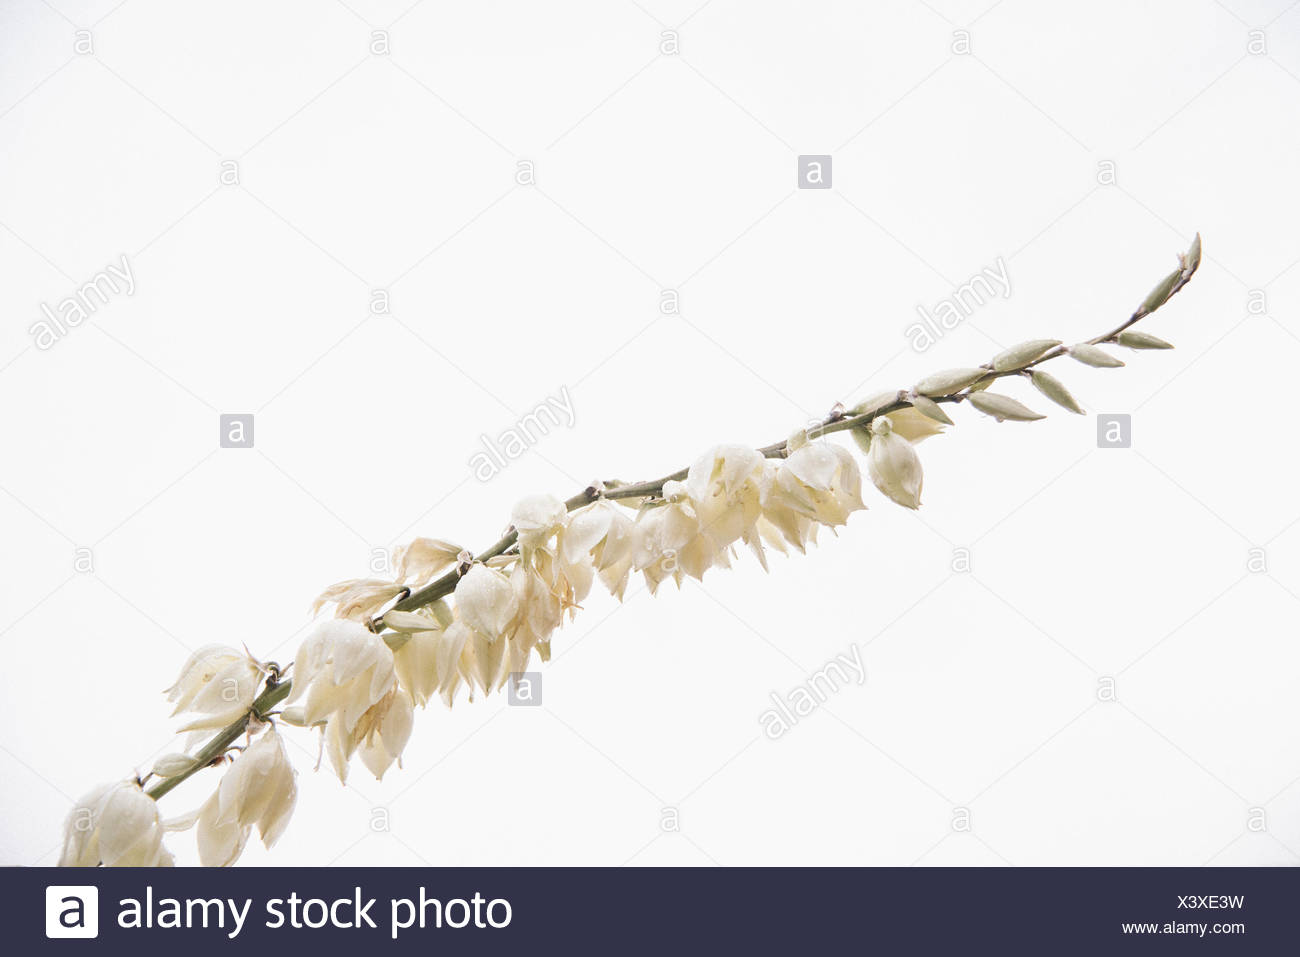 A Yucca Plant Flowering Spike With Small Delicate White Flowers